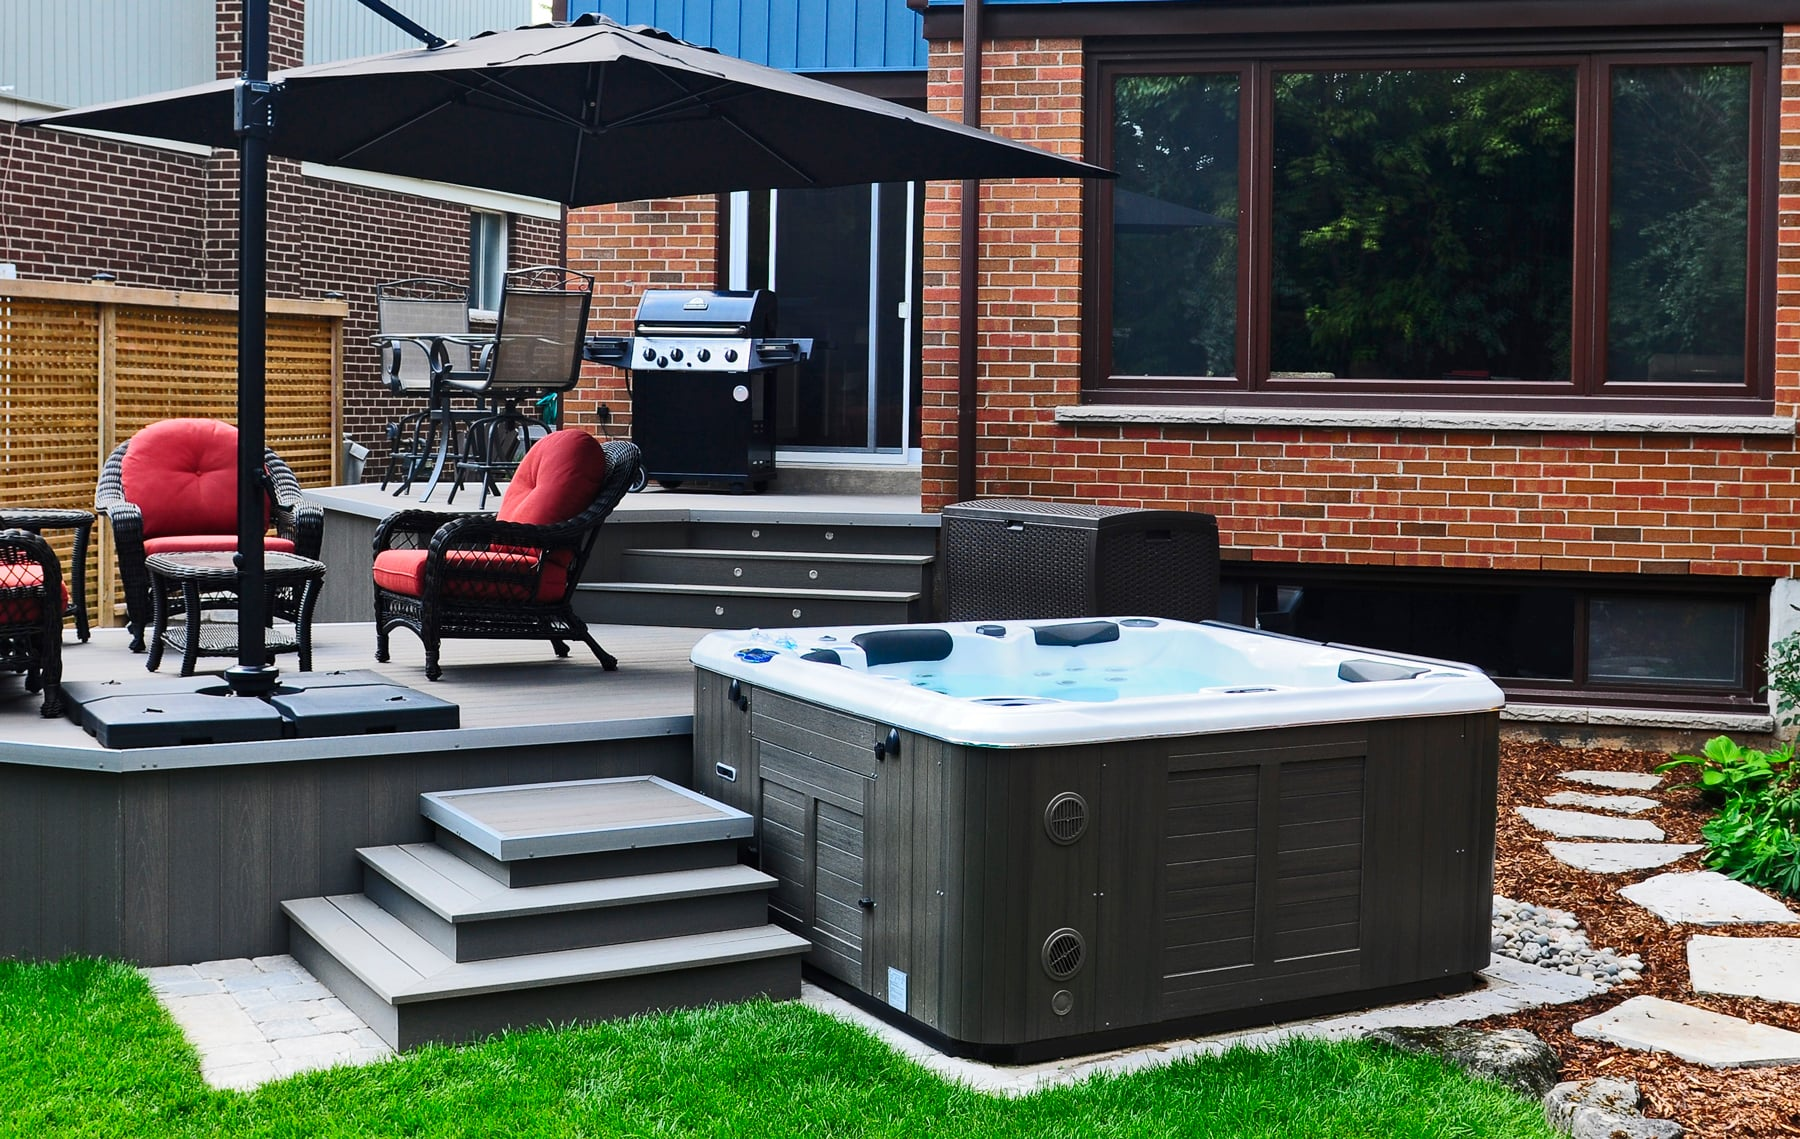 Brady's Hot Tub Delivery Guide: Planning For Your New Hot Tub